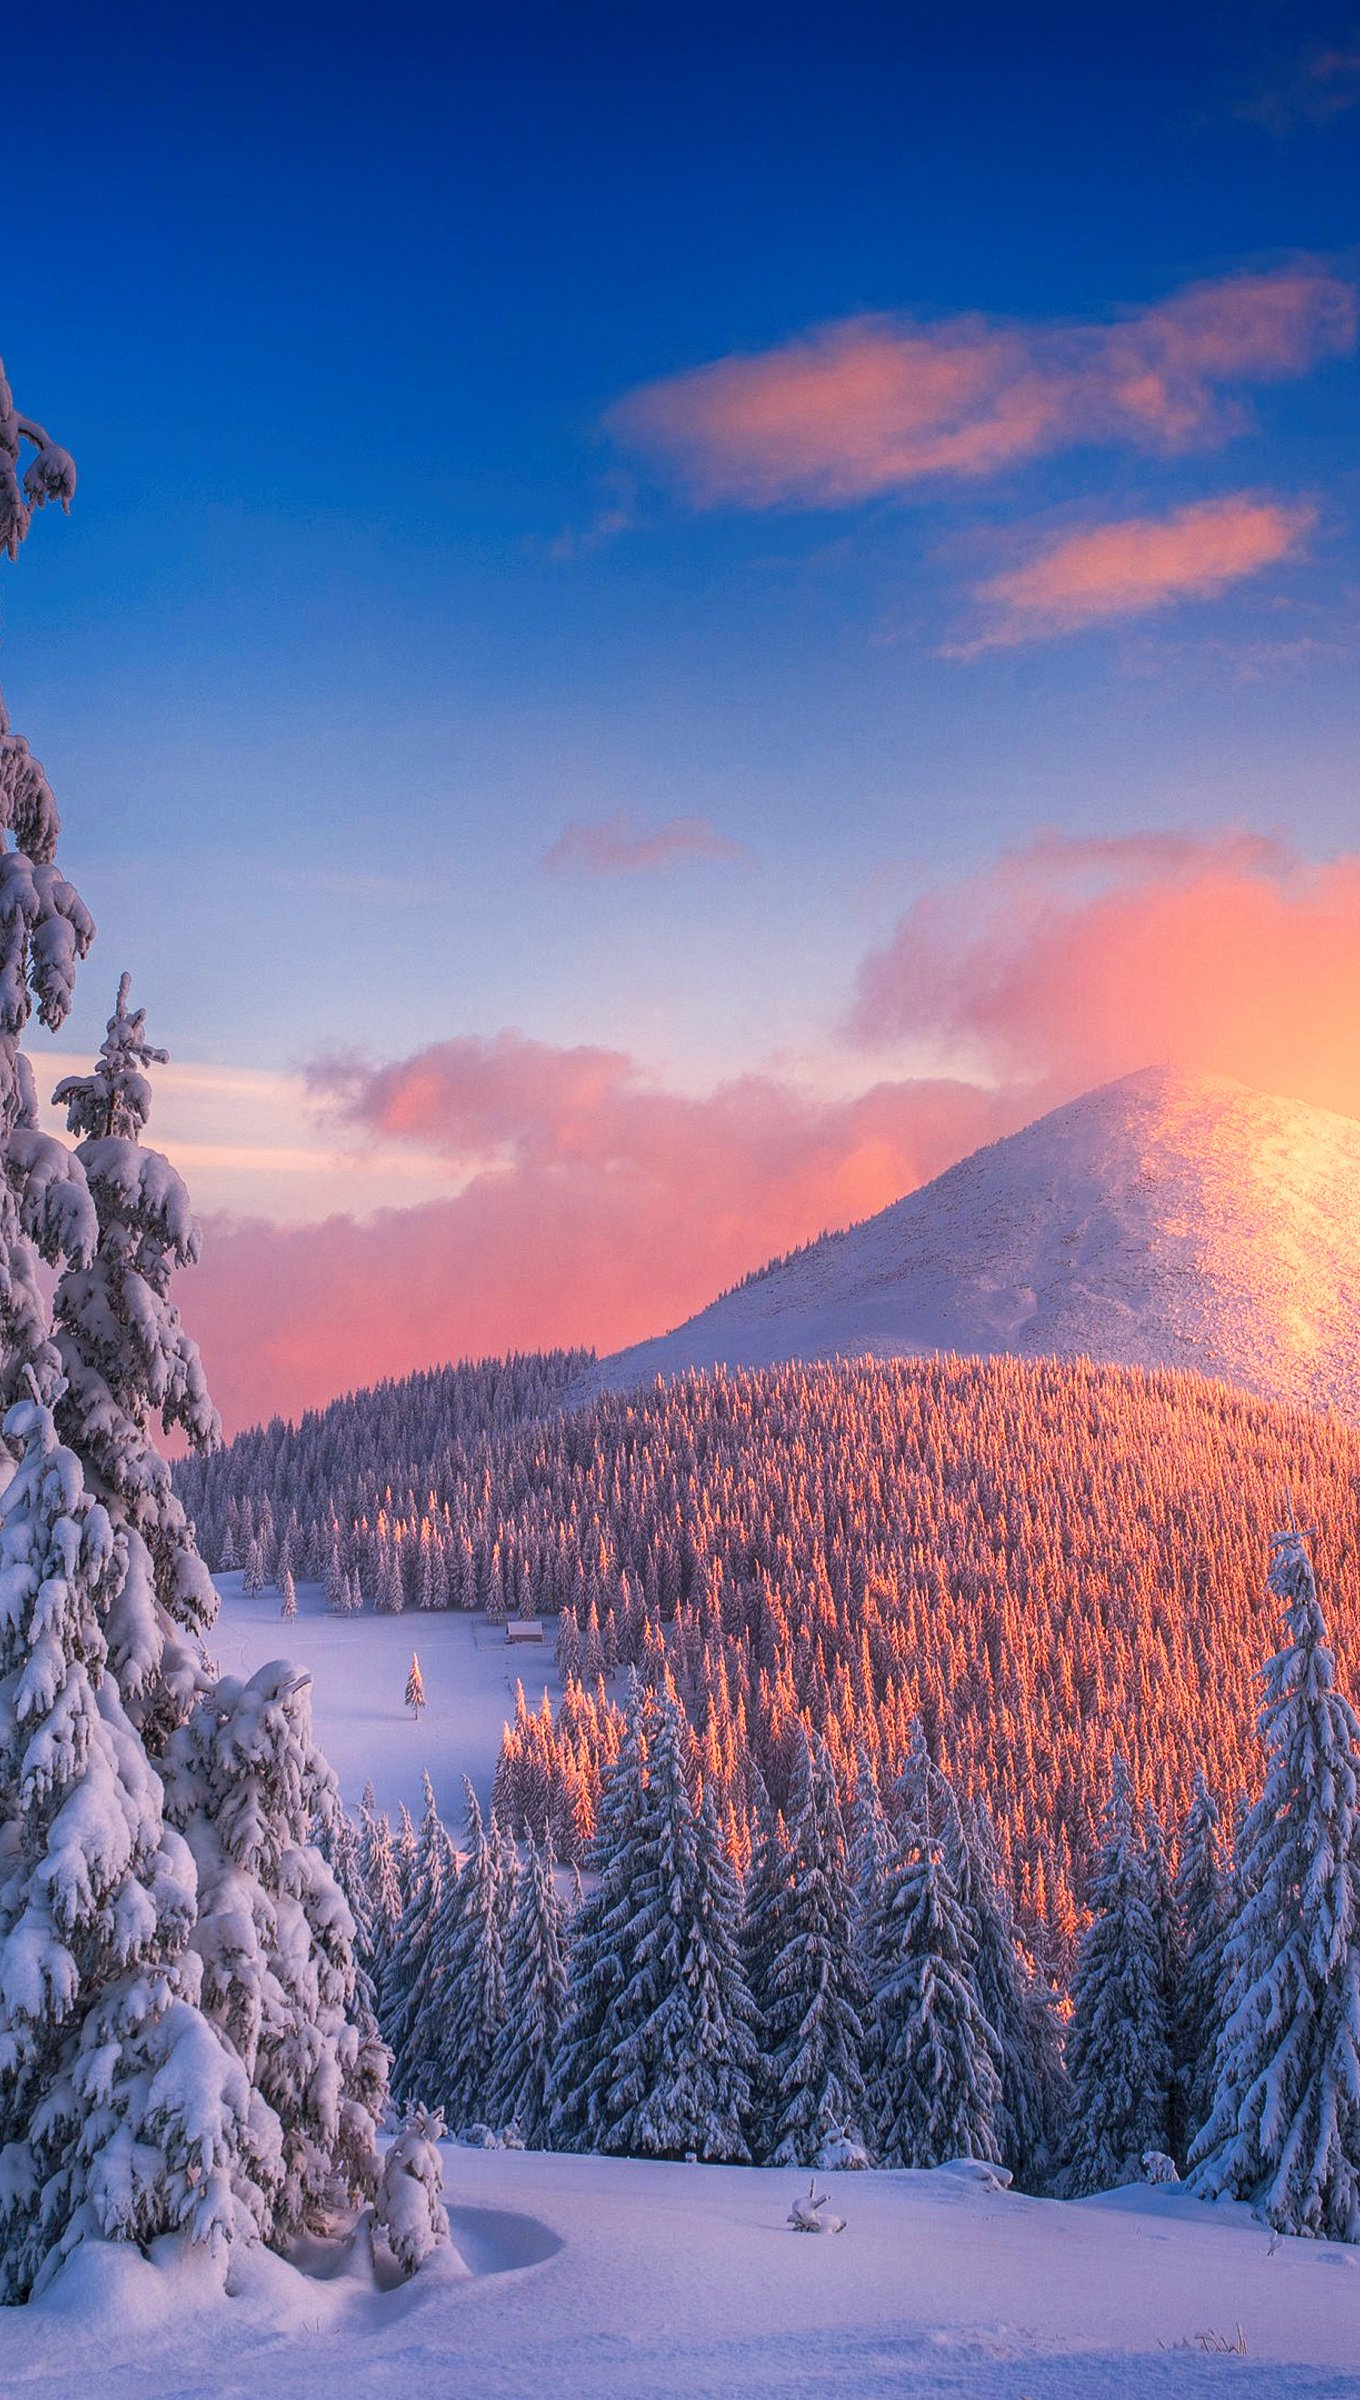 Wallpaper Snowy pine trees at sunset in mountains Vertical